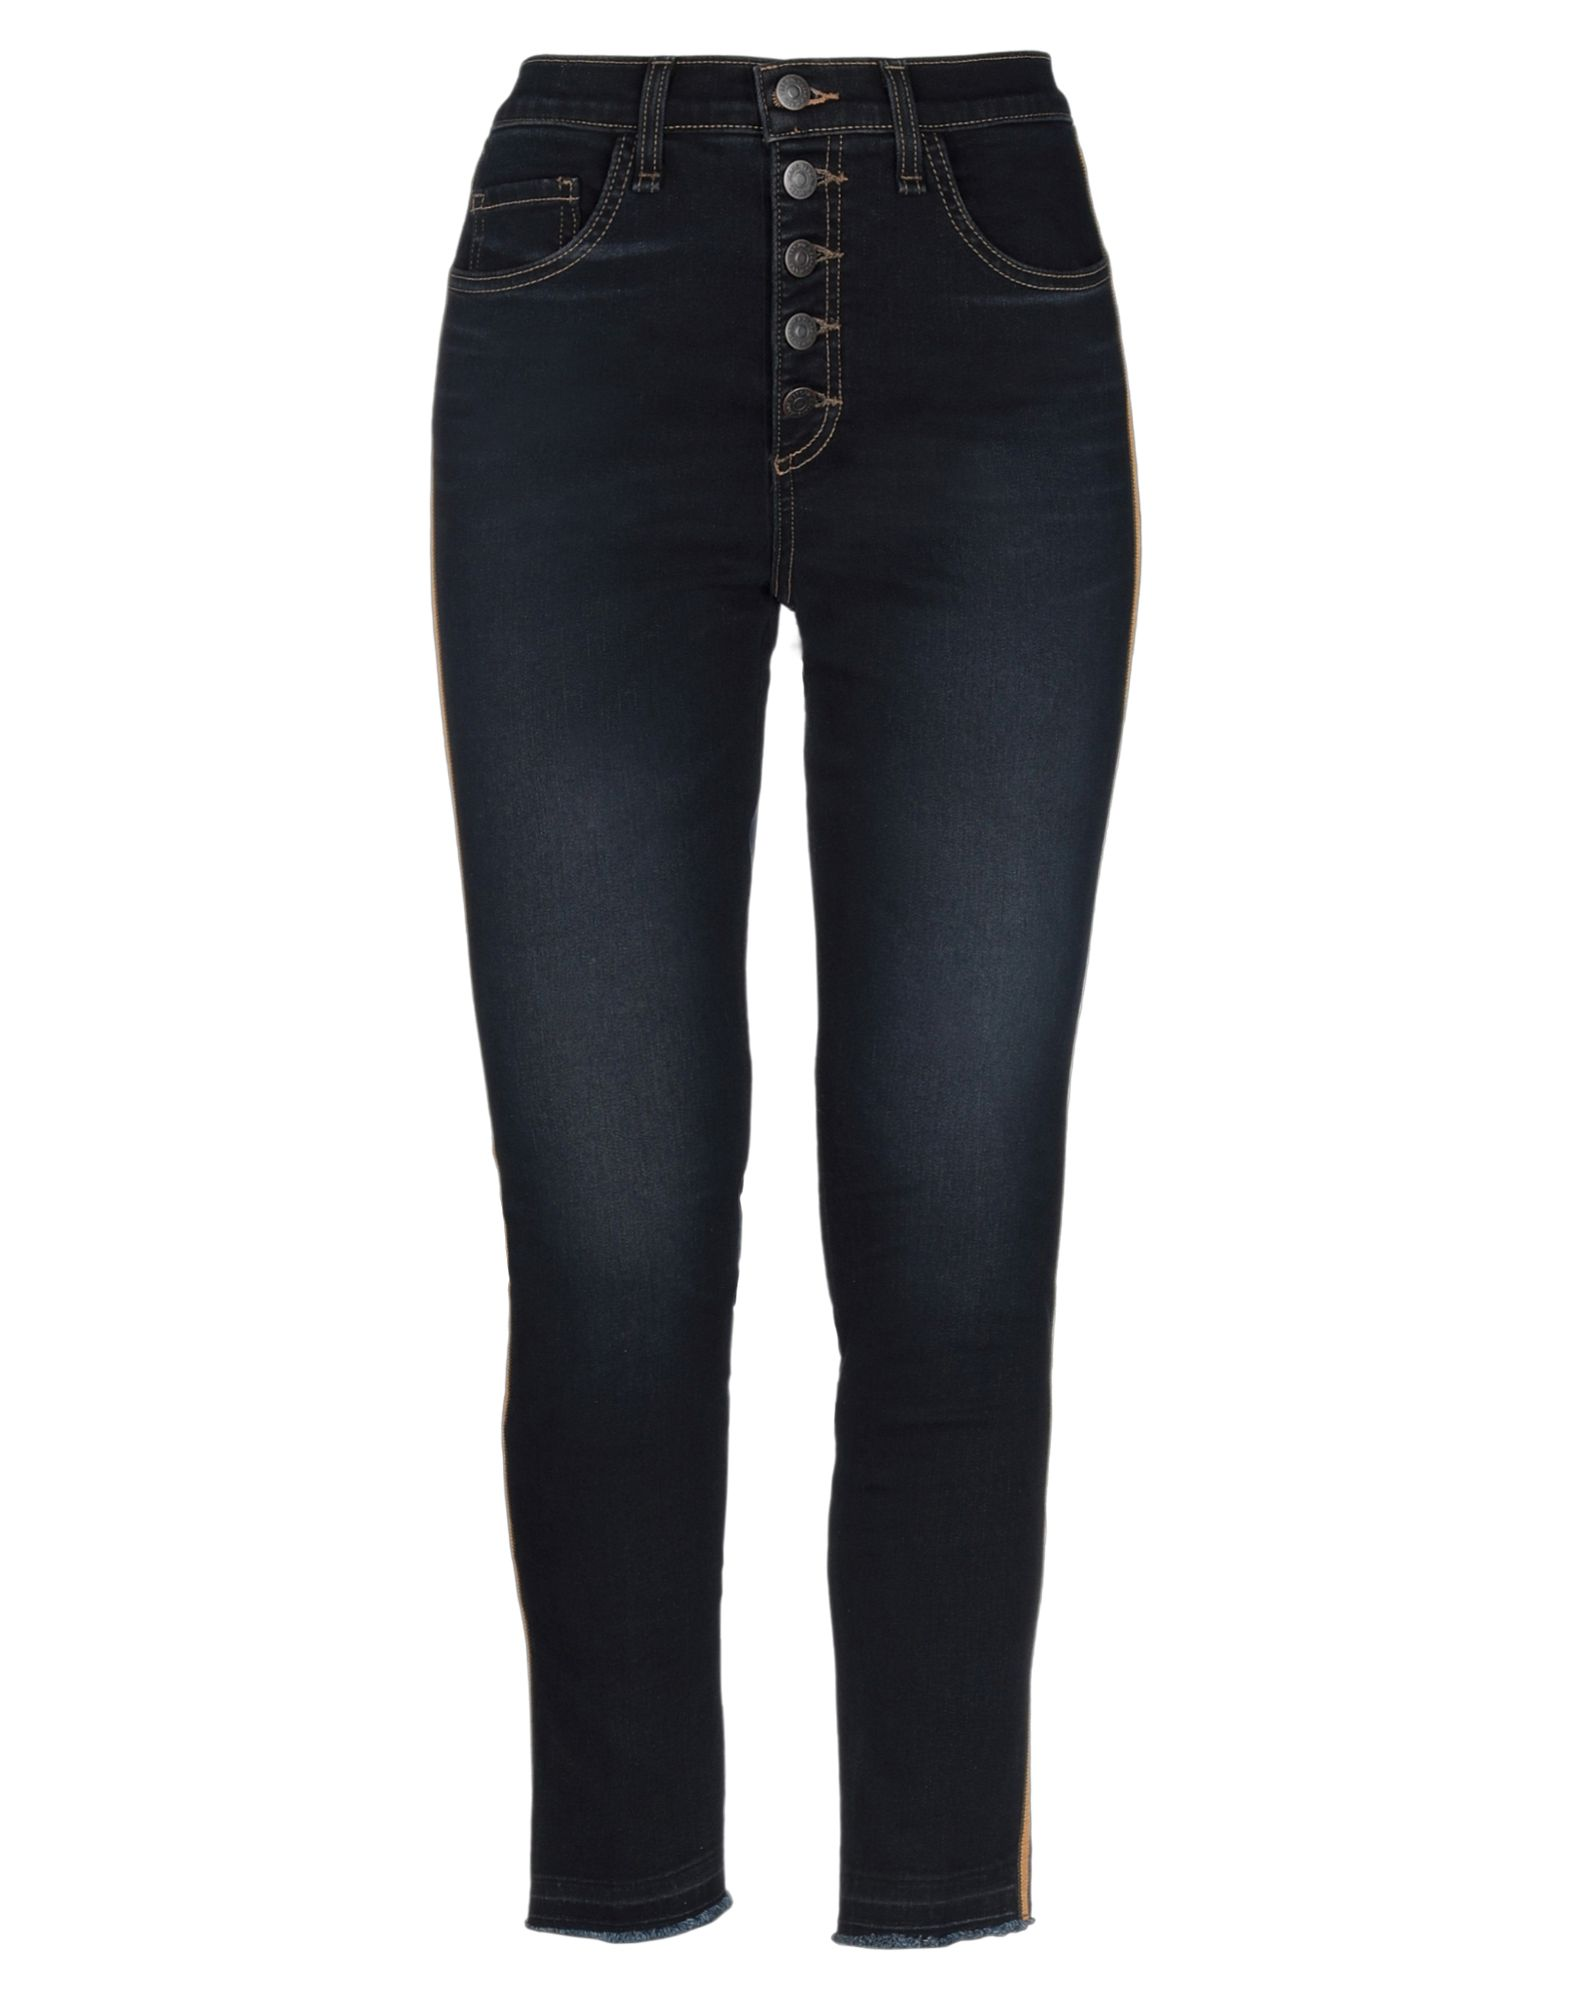 VERONICA BEARD Jeans. denim, side seam stripes, solid color, dark wash, mid rise, belt loops, front closure, button closing, no pockets, fringed hem, faded. 87% Cotton, 11% Polyester, 2% Polyurethane